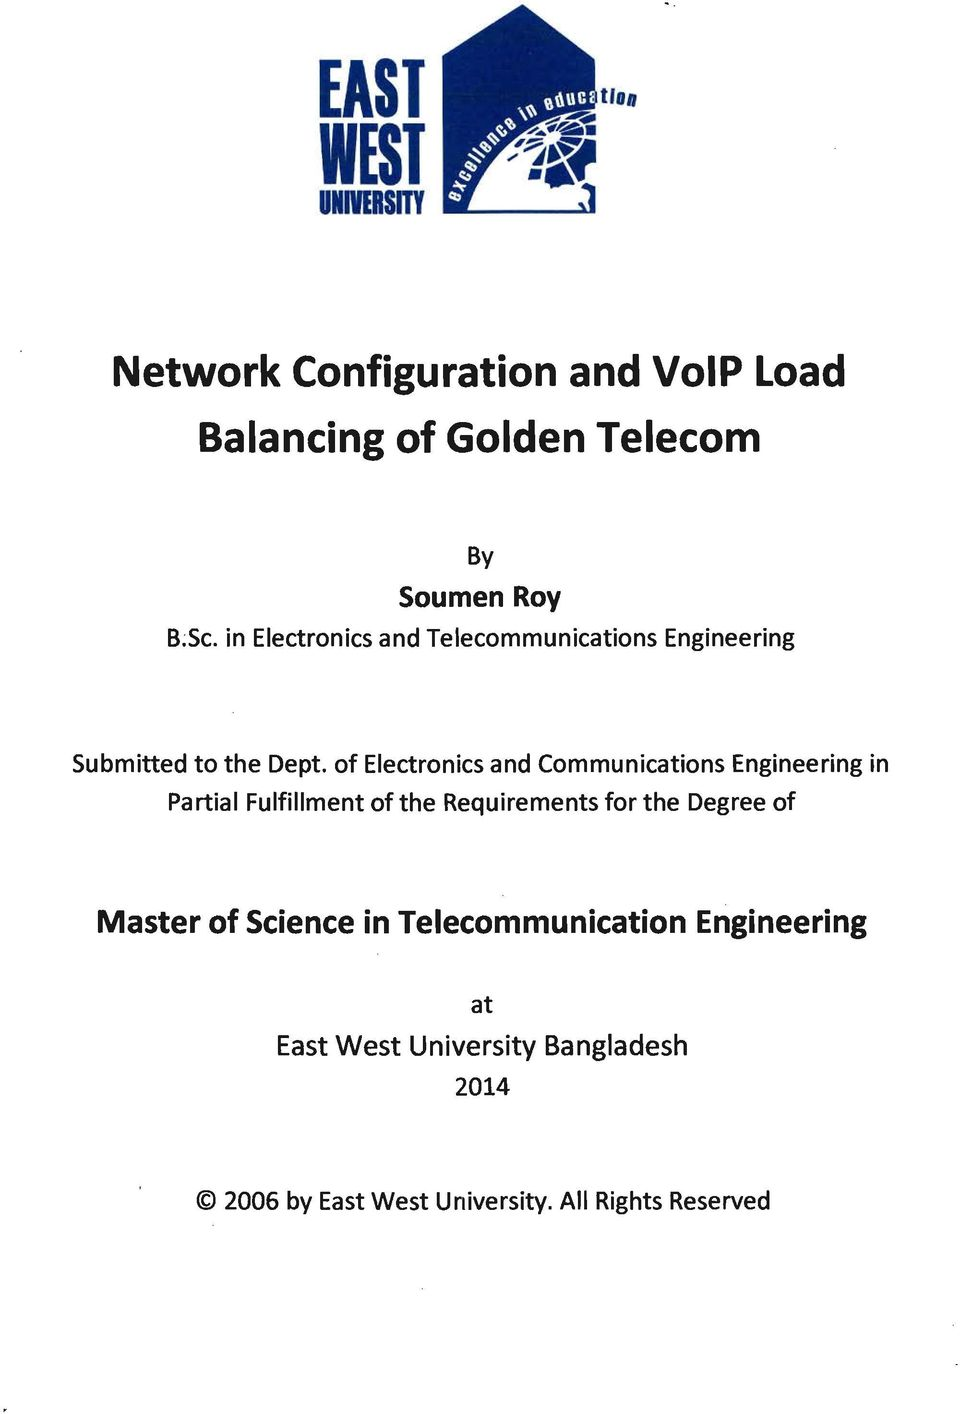 of Electronics and Communications Engineering in Partial Fulfillment of the Requirements for the Degree of